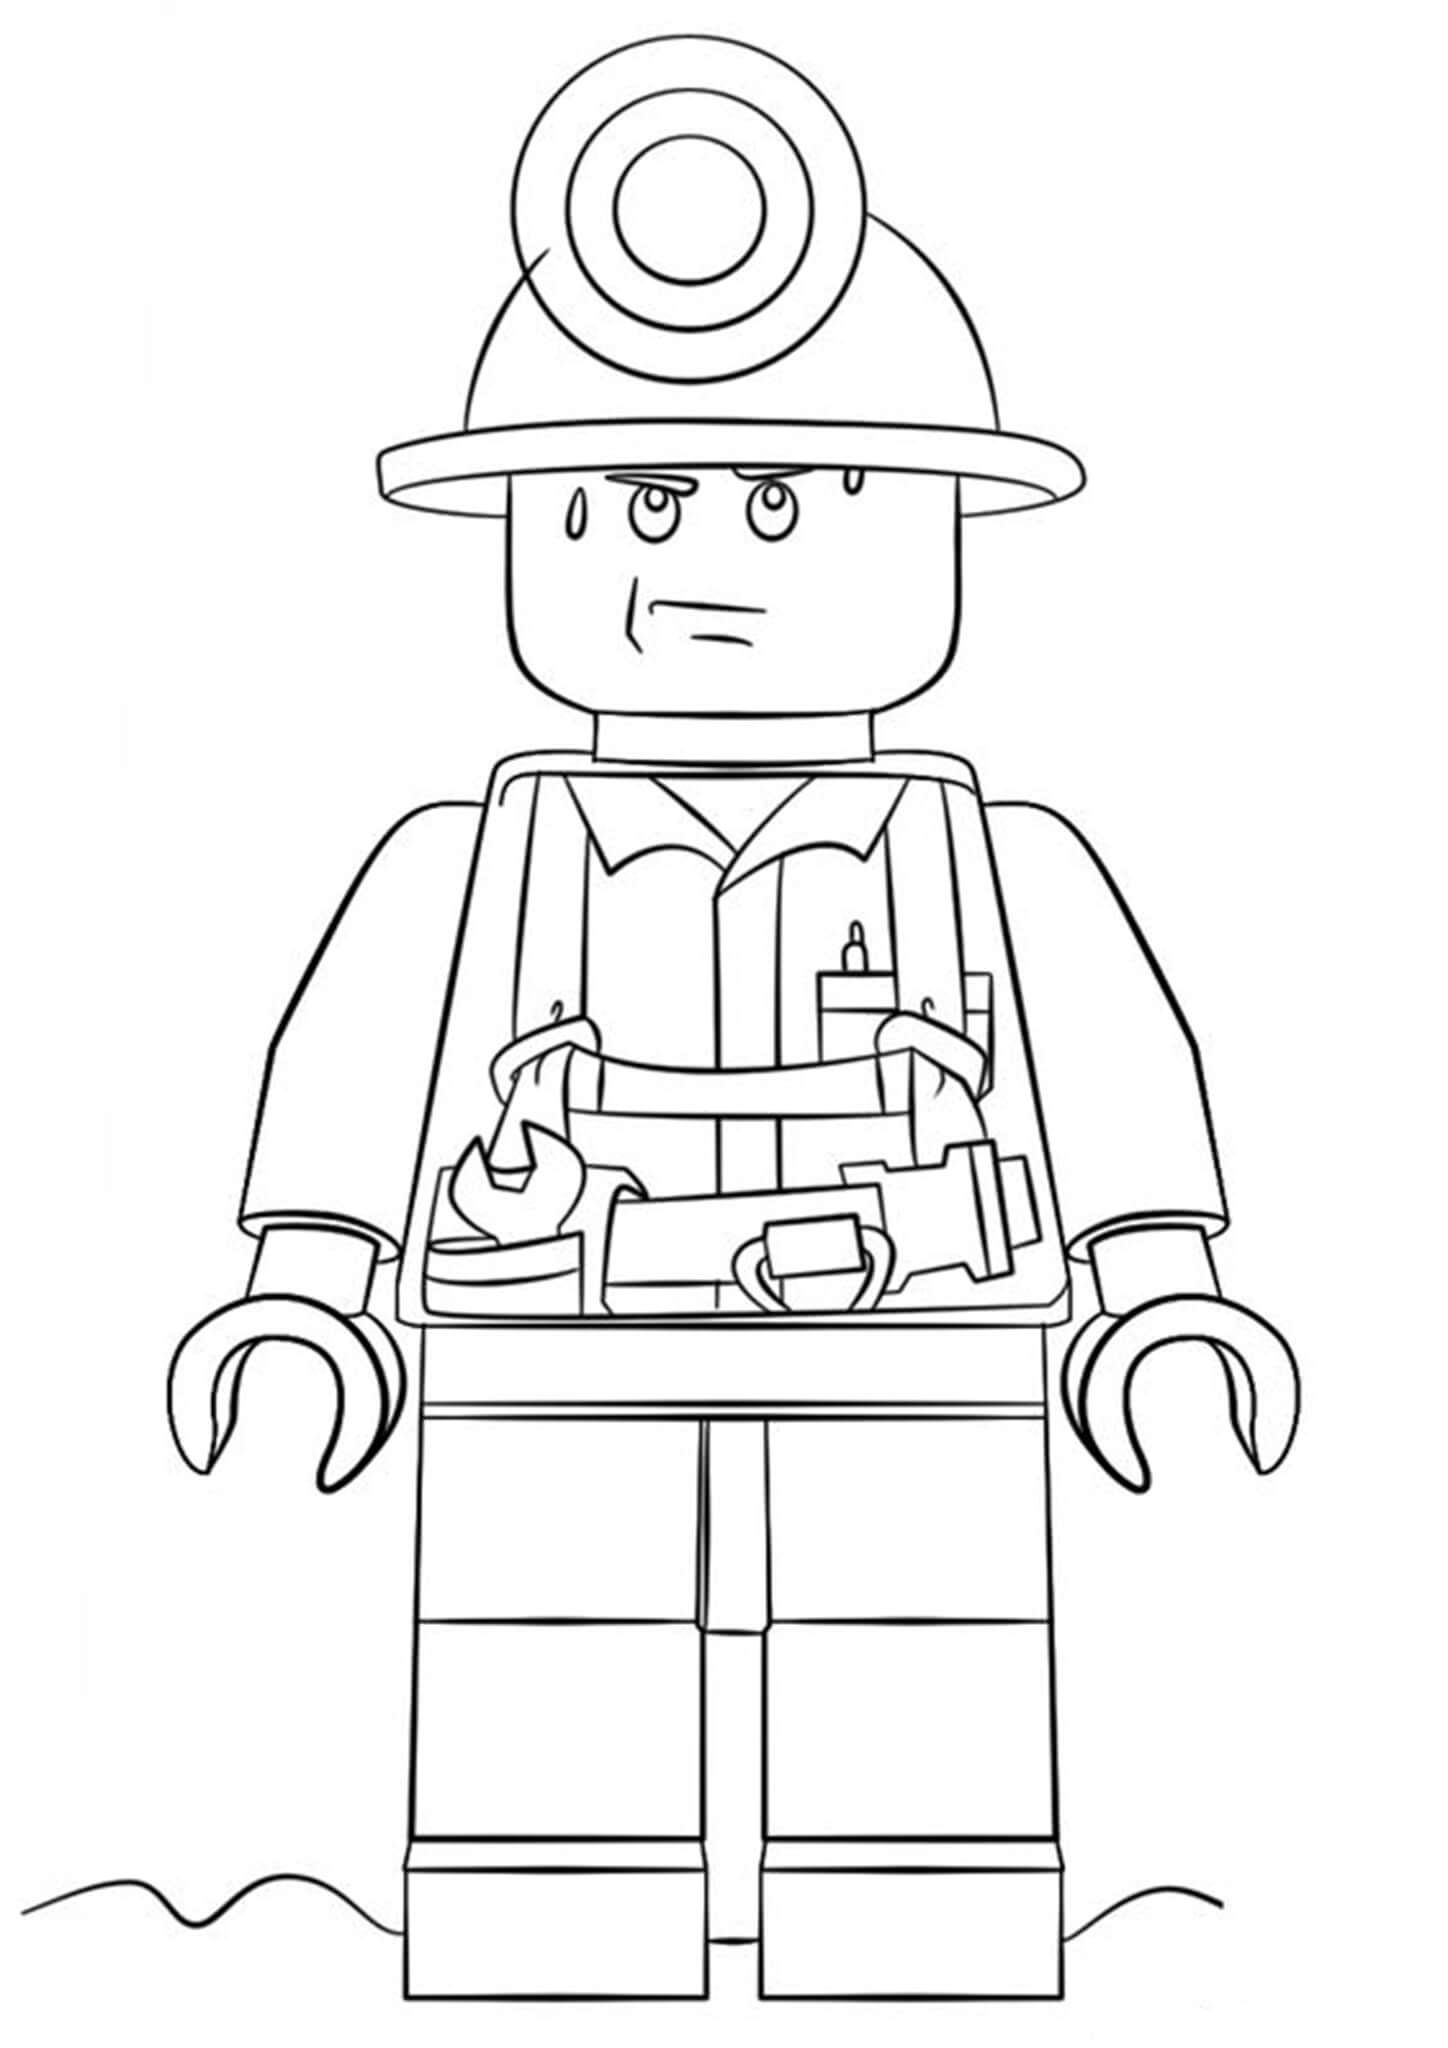 Free Easy To Print Lego Coloring Pages Lego Coloring Lego Coloring Pages Coloring Pages